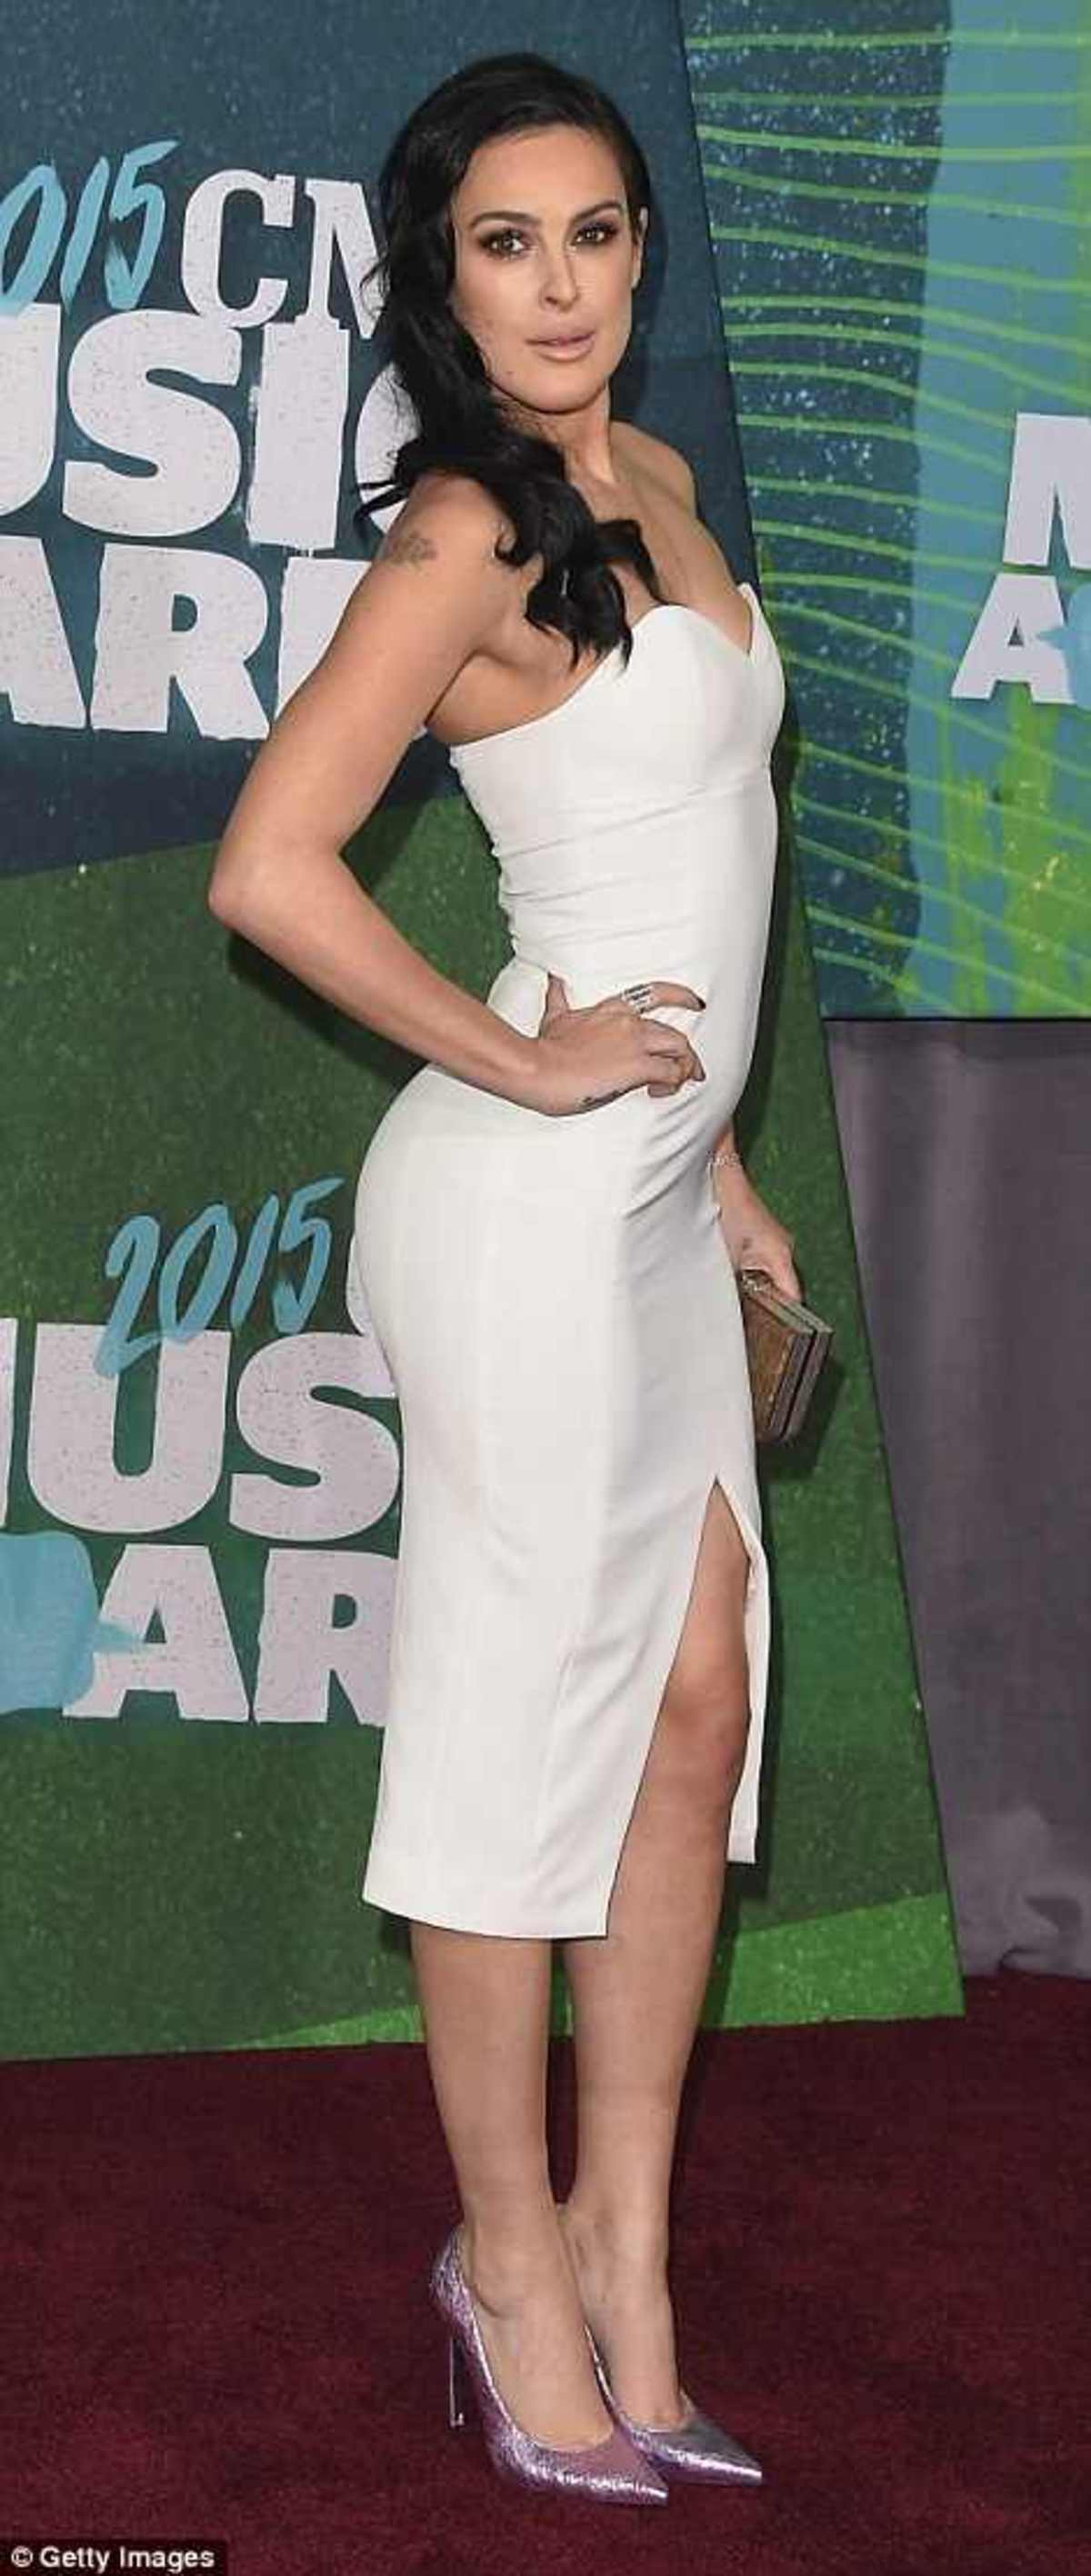 2984EE5800000578-3119329-Svelte_She_looked_good_in_a_strapless_clinging_white_dress_featu-a-156_1433988062495